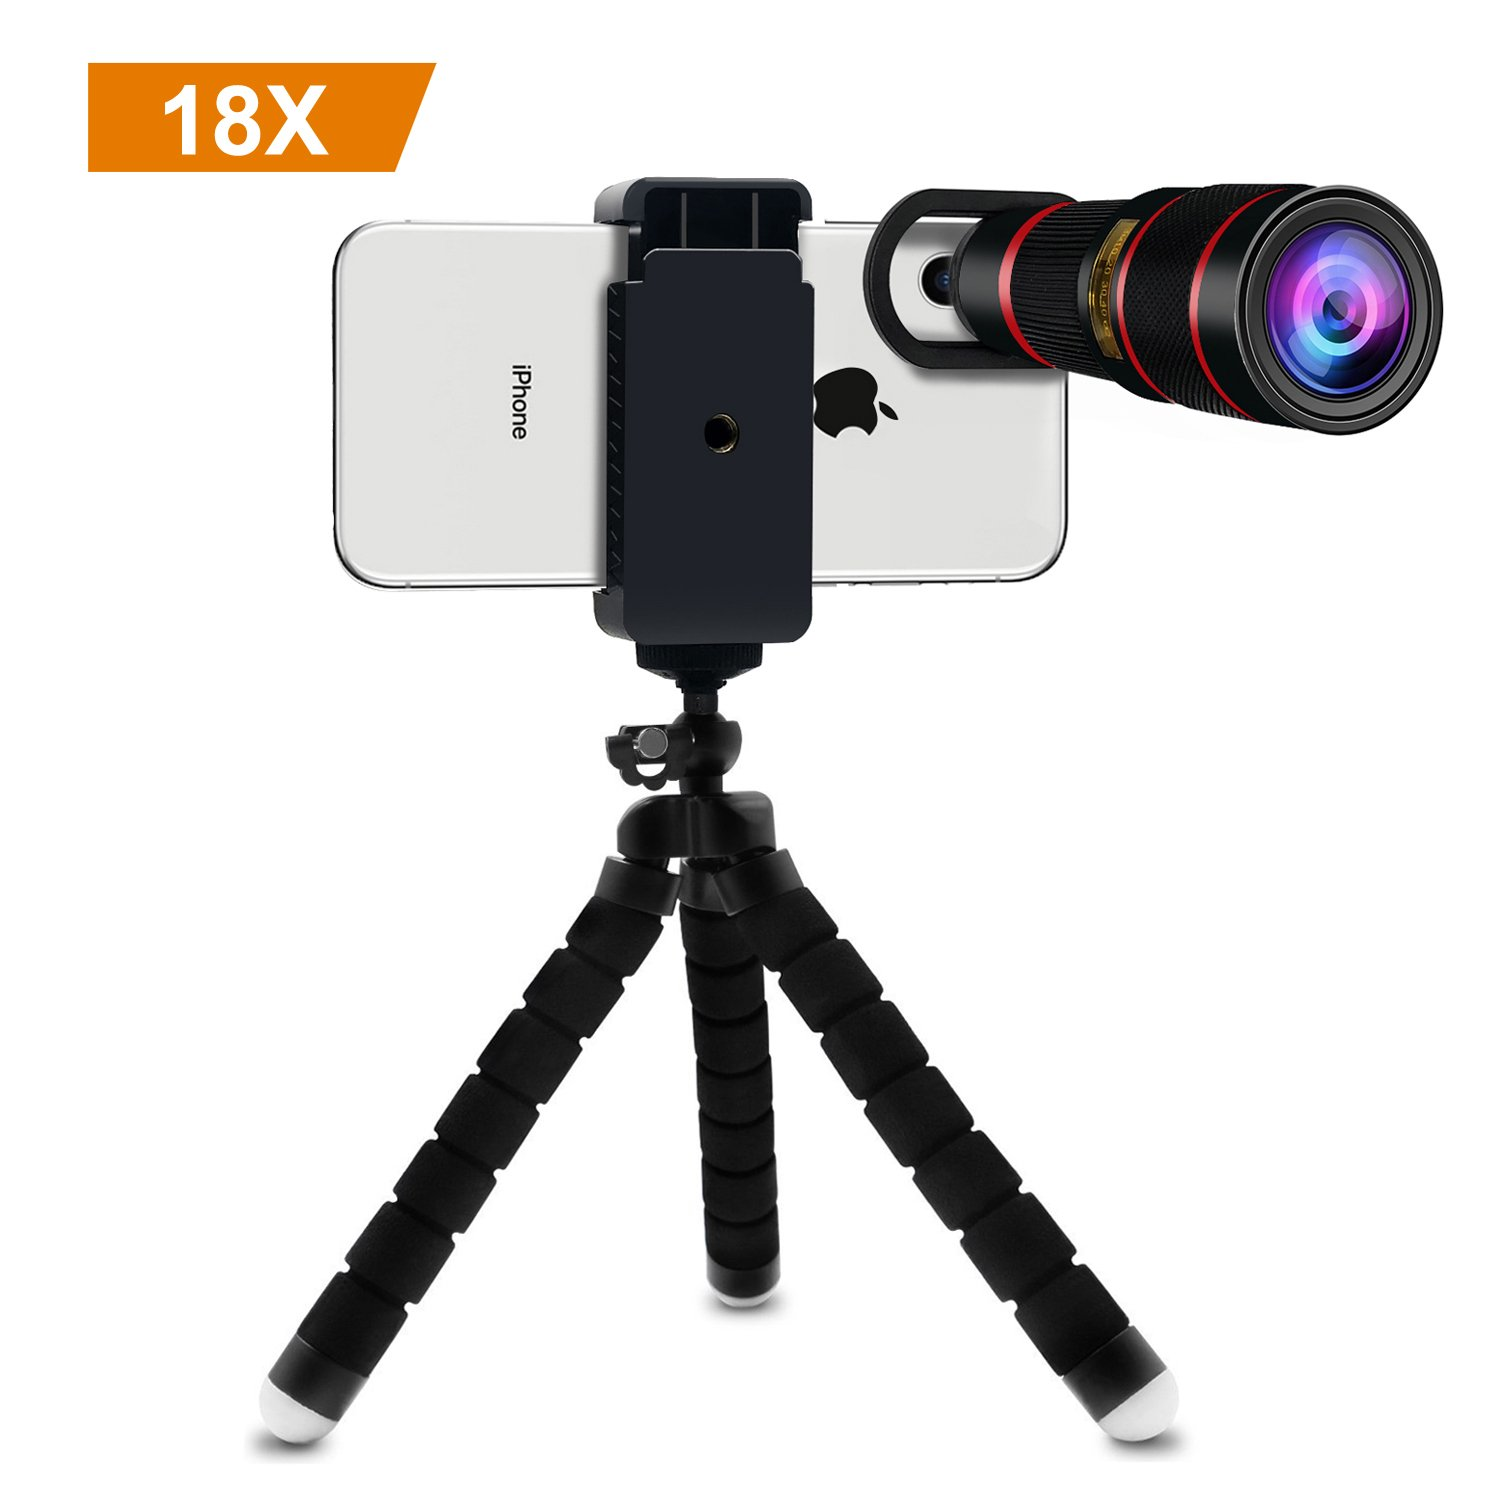 Cell Phone Telephoto Lens, Avanz 2018 Upgraded 18x Zoom Telephoto Lens with Mini Tripod & Universal Clip & Phone Holder, Zoom Lens for iPhone X/8/7/6S/SE, Samsung, iPad, Smartphones